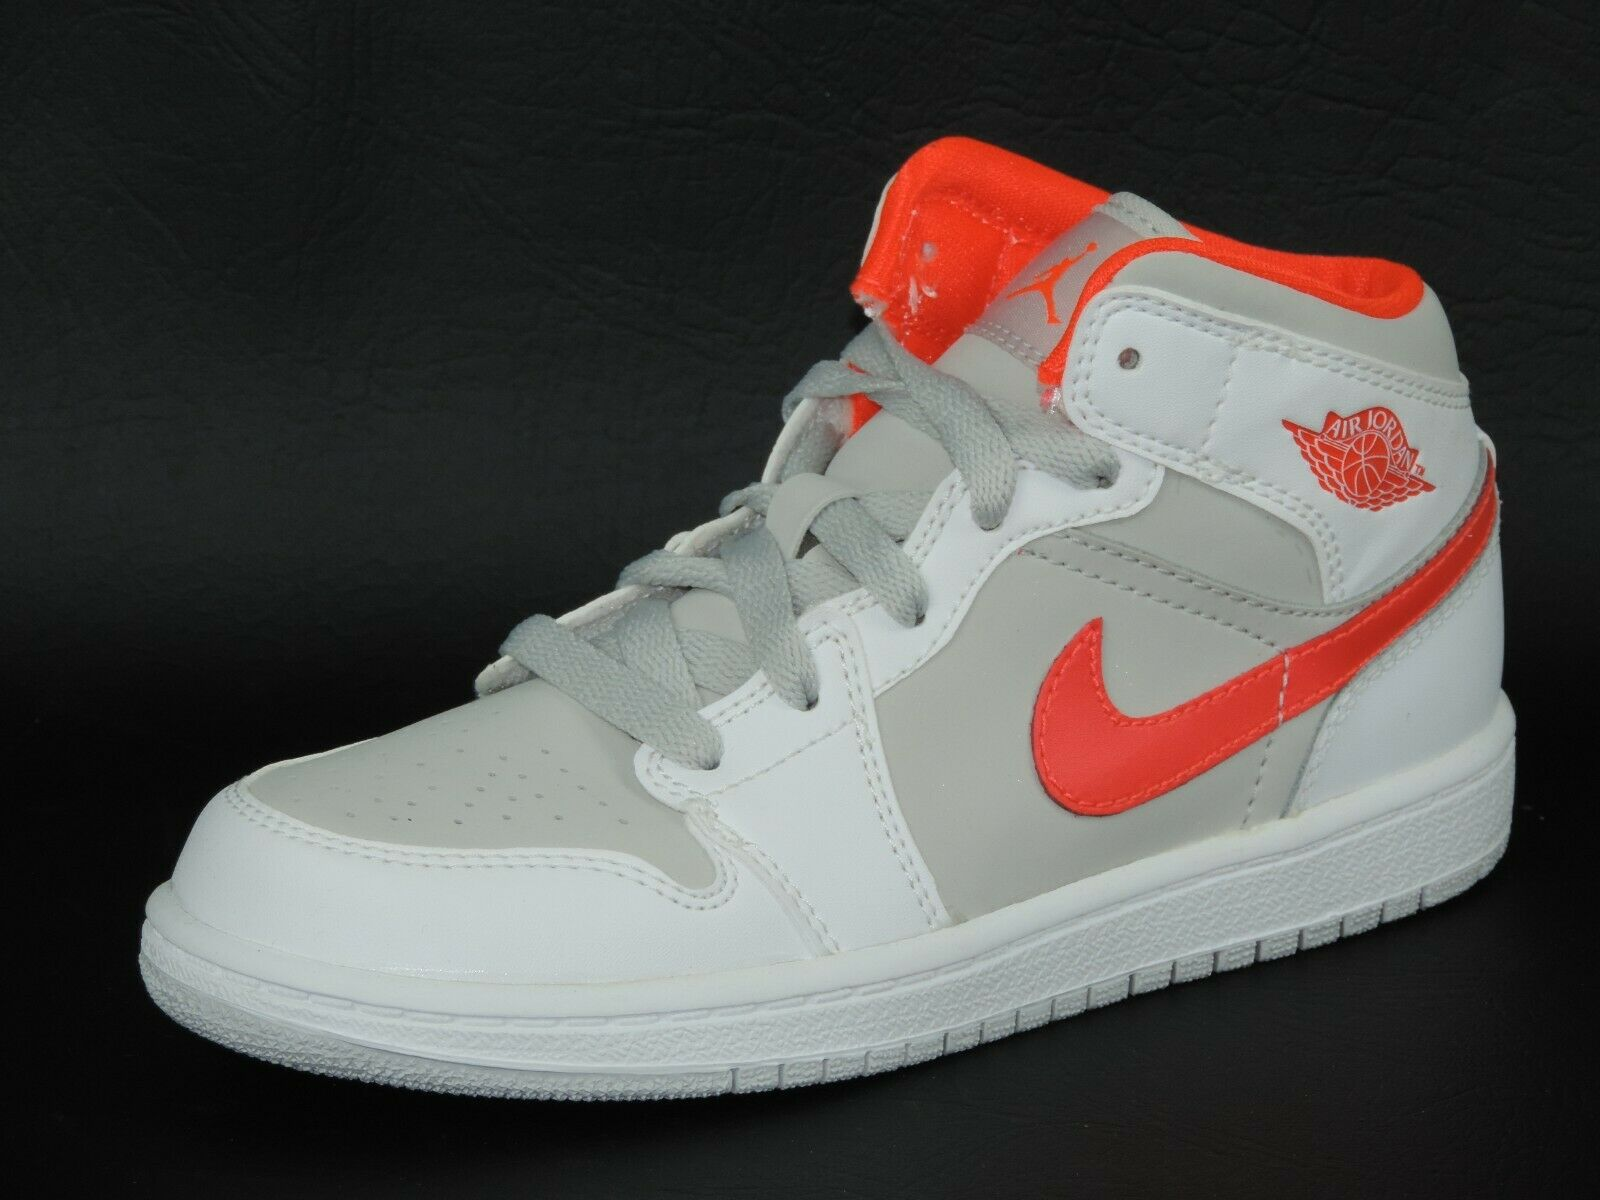 Nike Air Jordan 1 Phat Girls Shoes PS 364782 119 Basketball Leather White DS